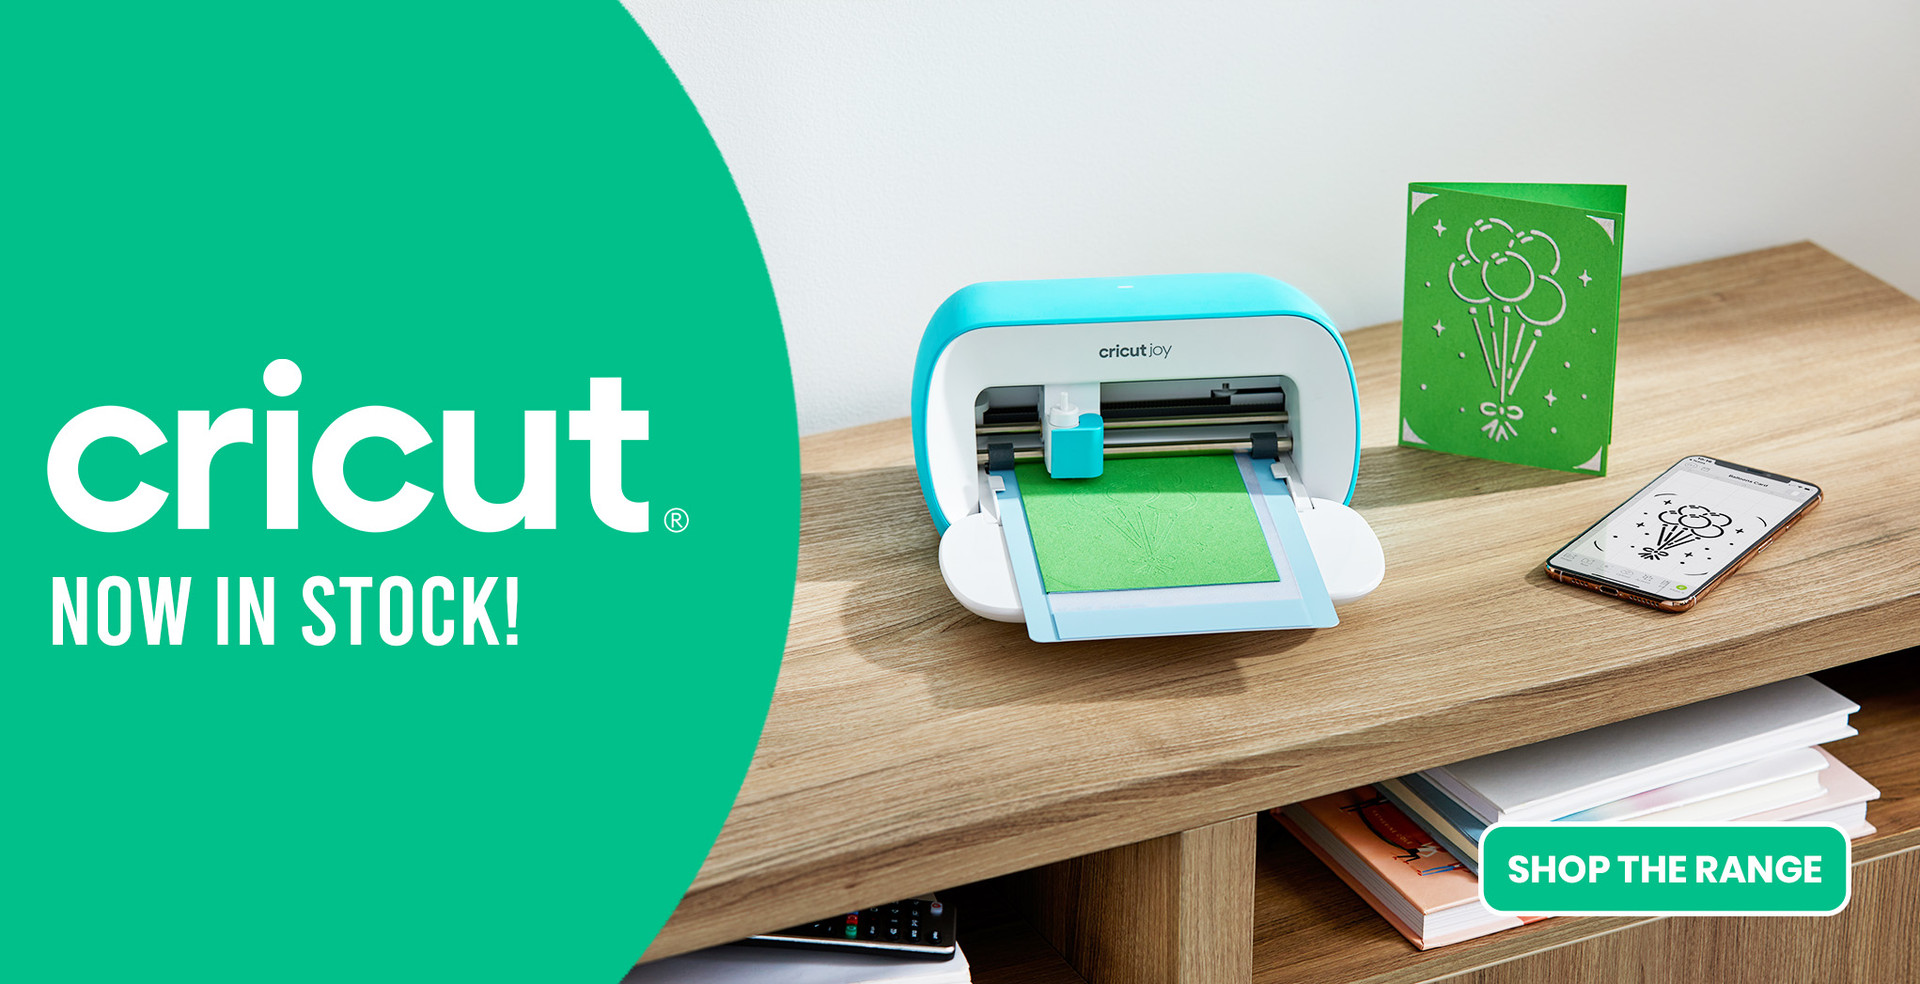 Cricut® is now in stock at MediaForm!